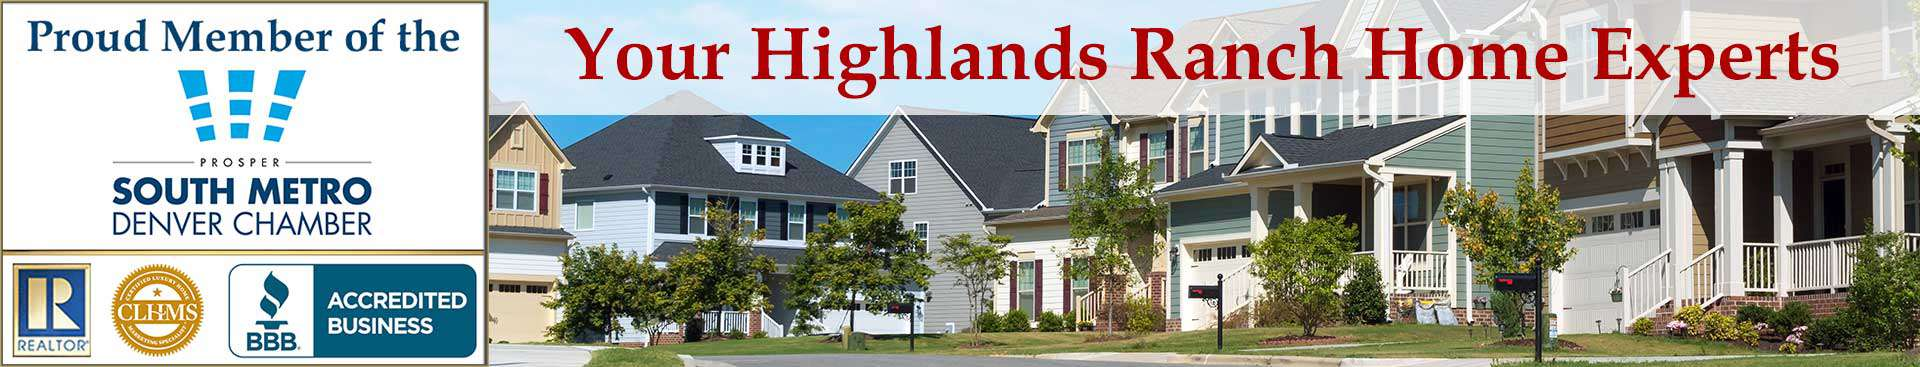 Highlands Ranch CO Organizational Banner